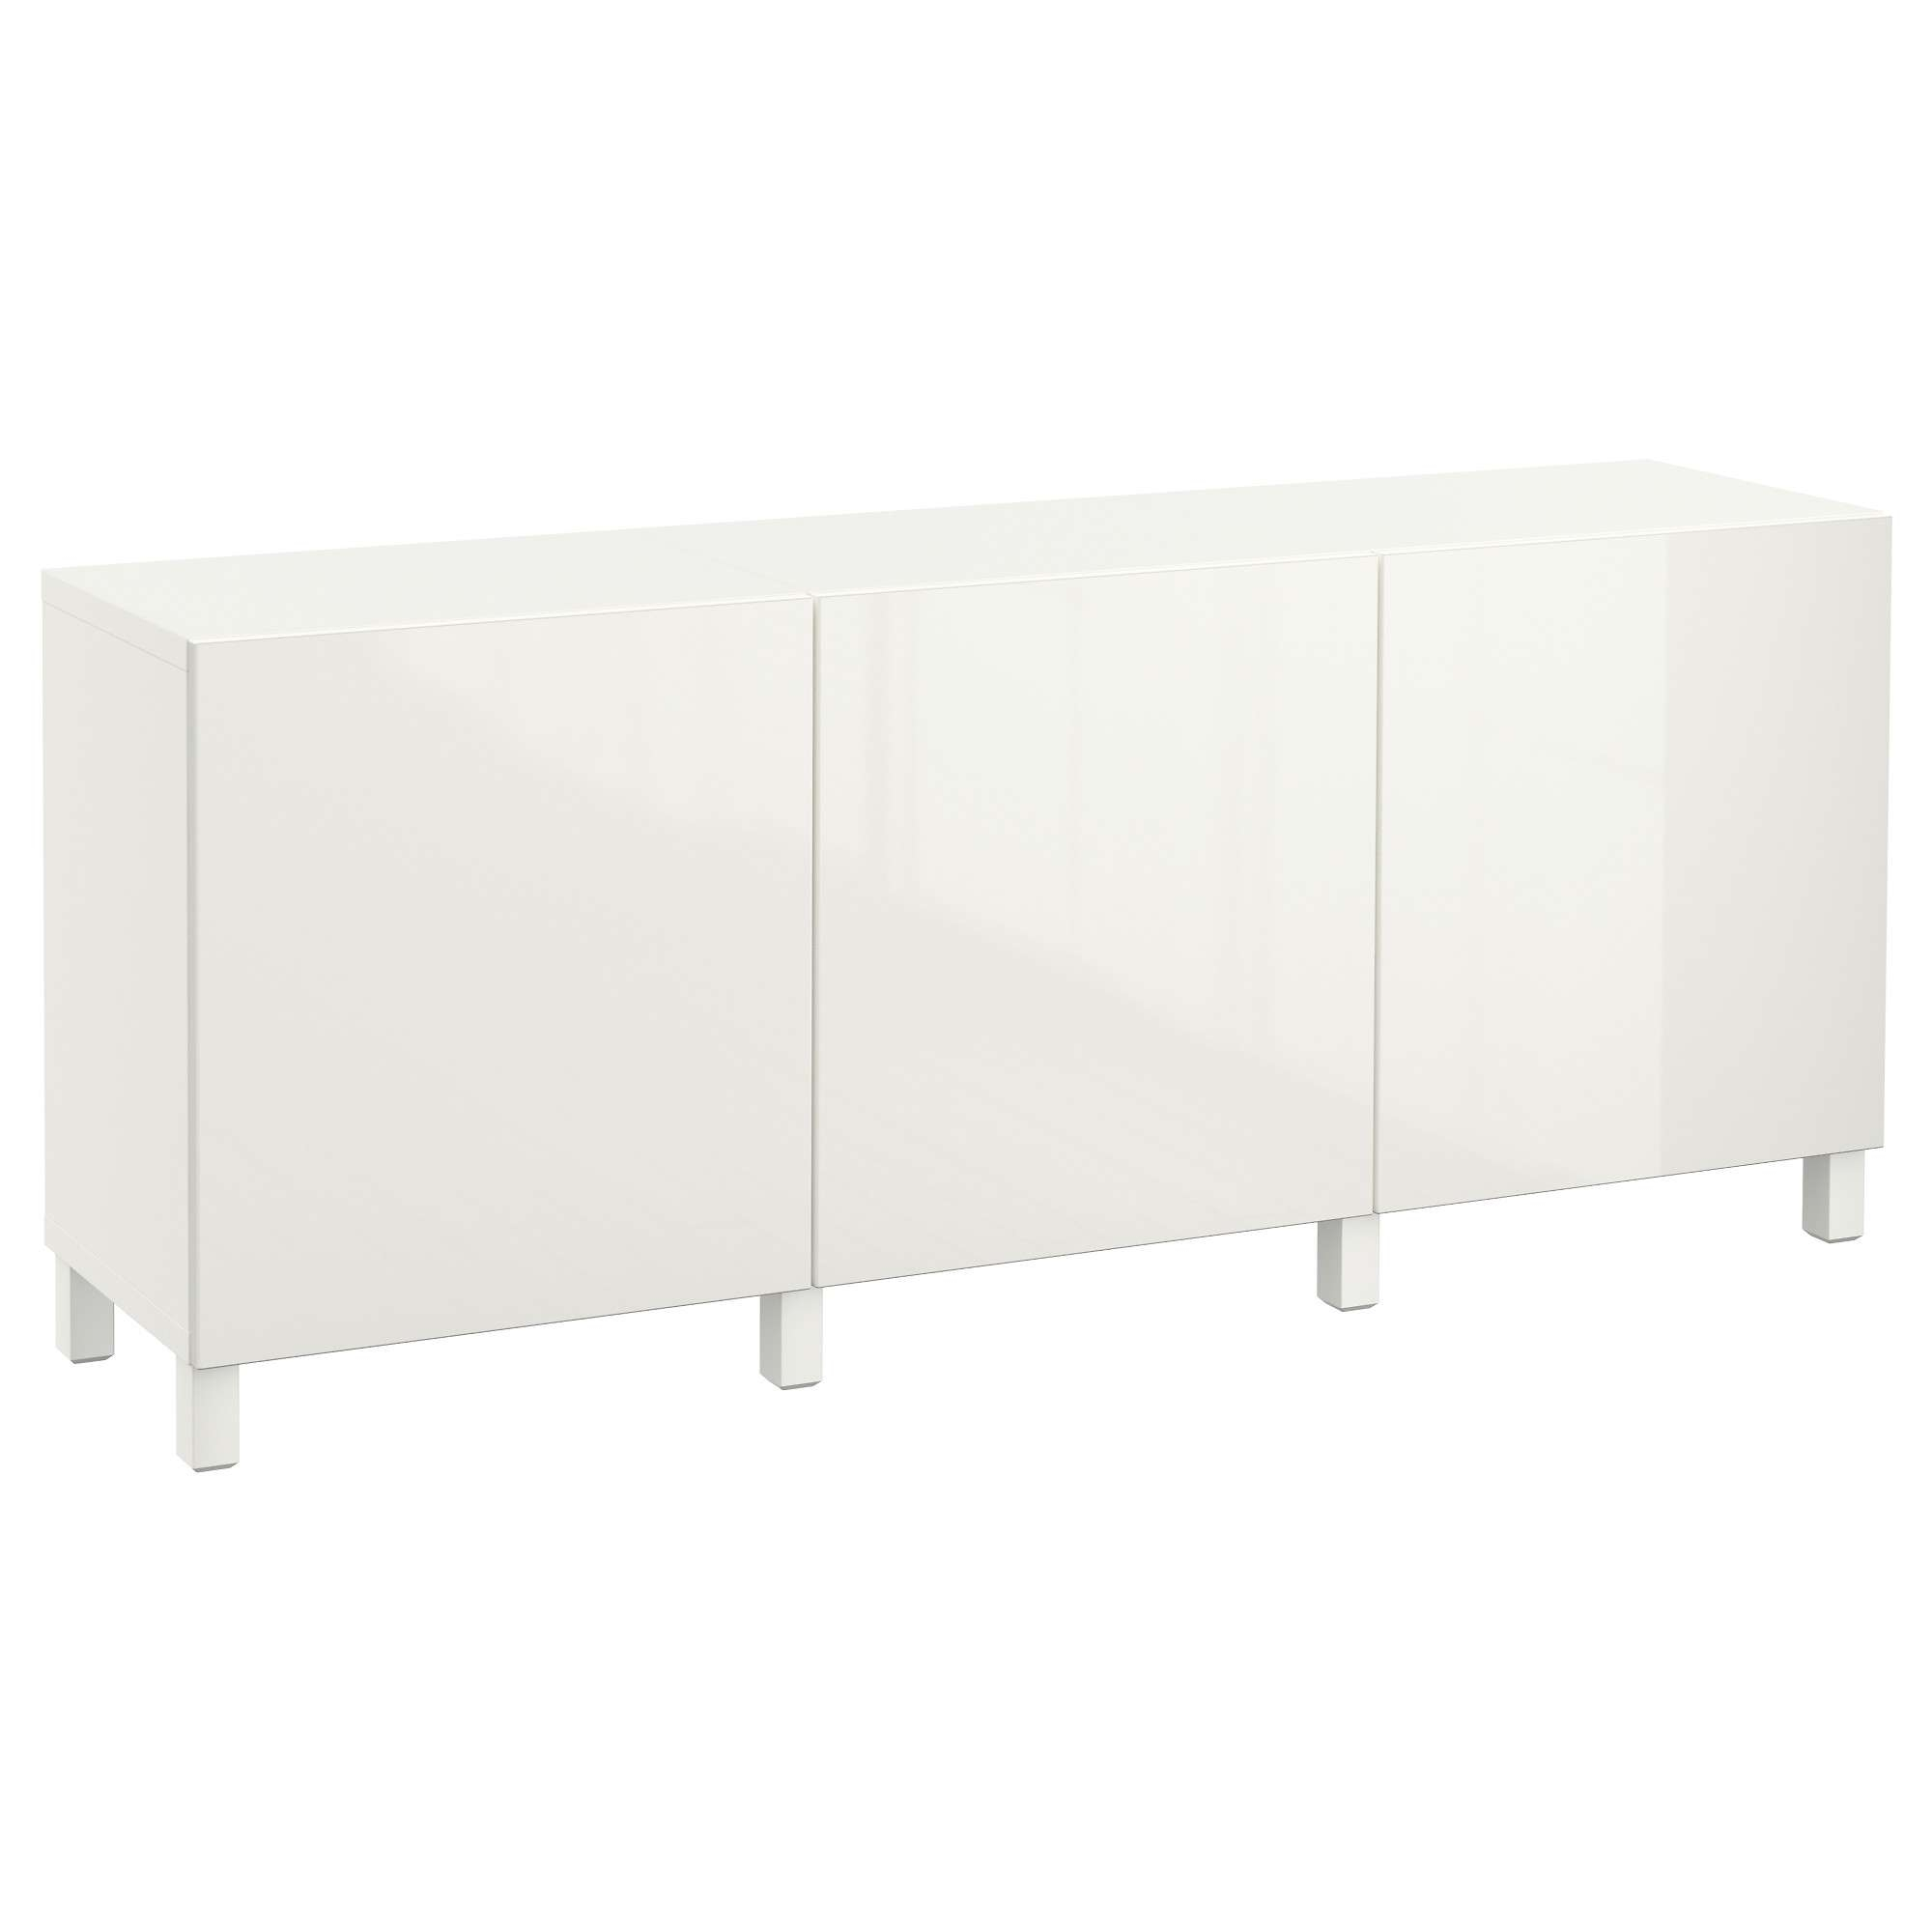 Bestå Storage Combination With Doors – White/selsviken High Gloss For Ikea Besta Sideboards (View 18 of 20)